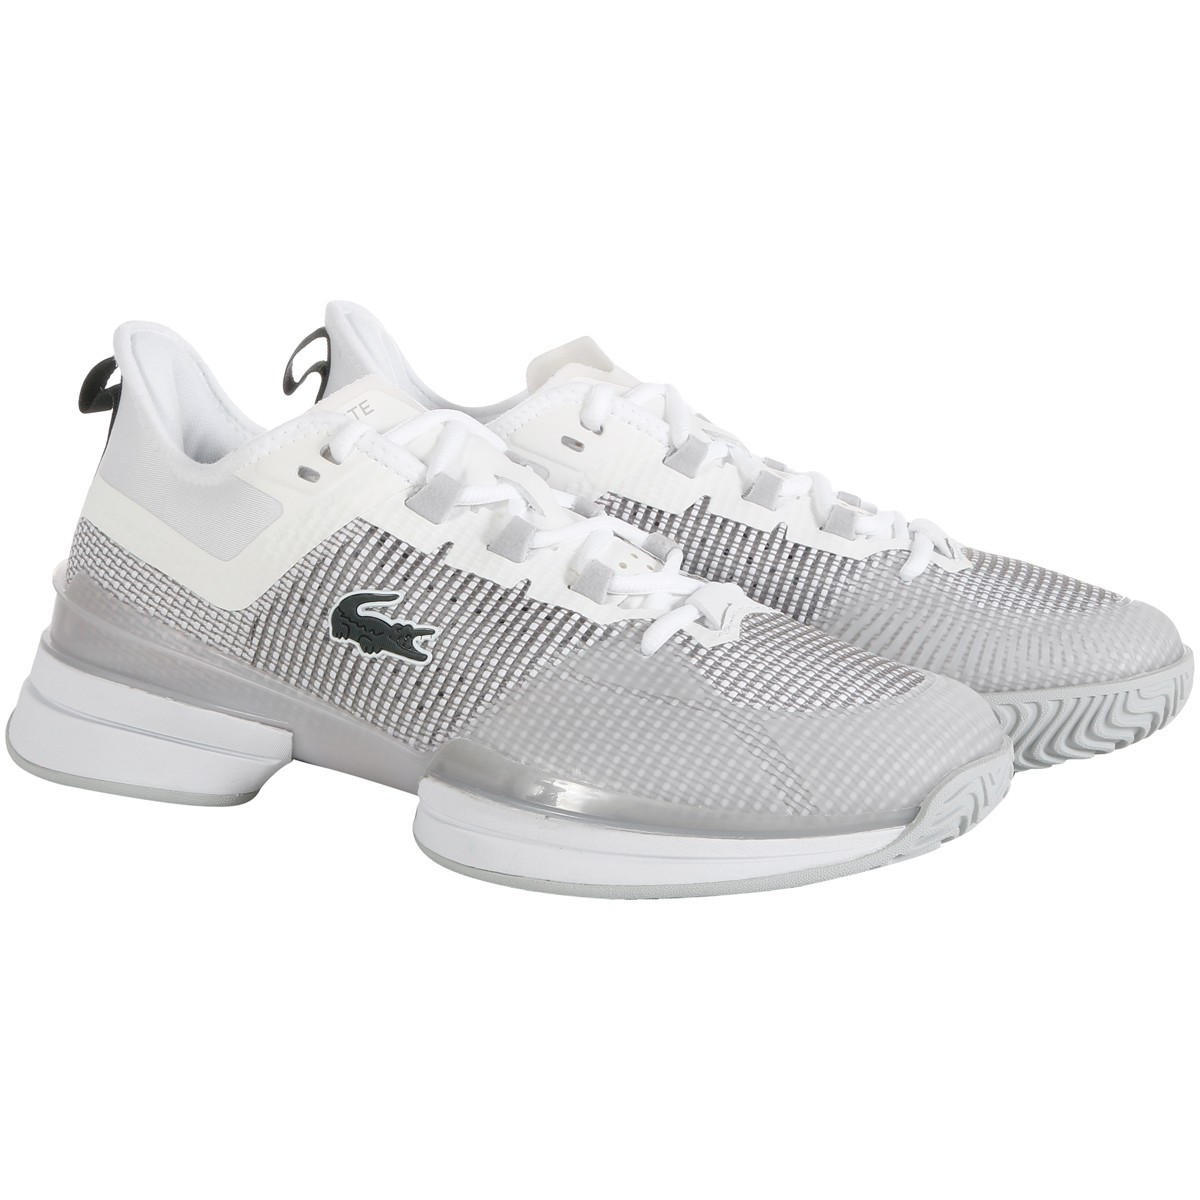 CHAUSSURES LACOSTE AG-LT TERRE BATTUE